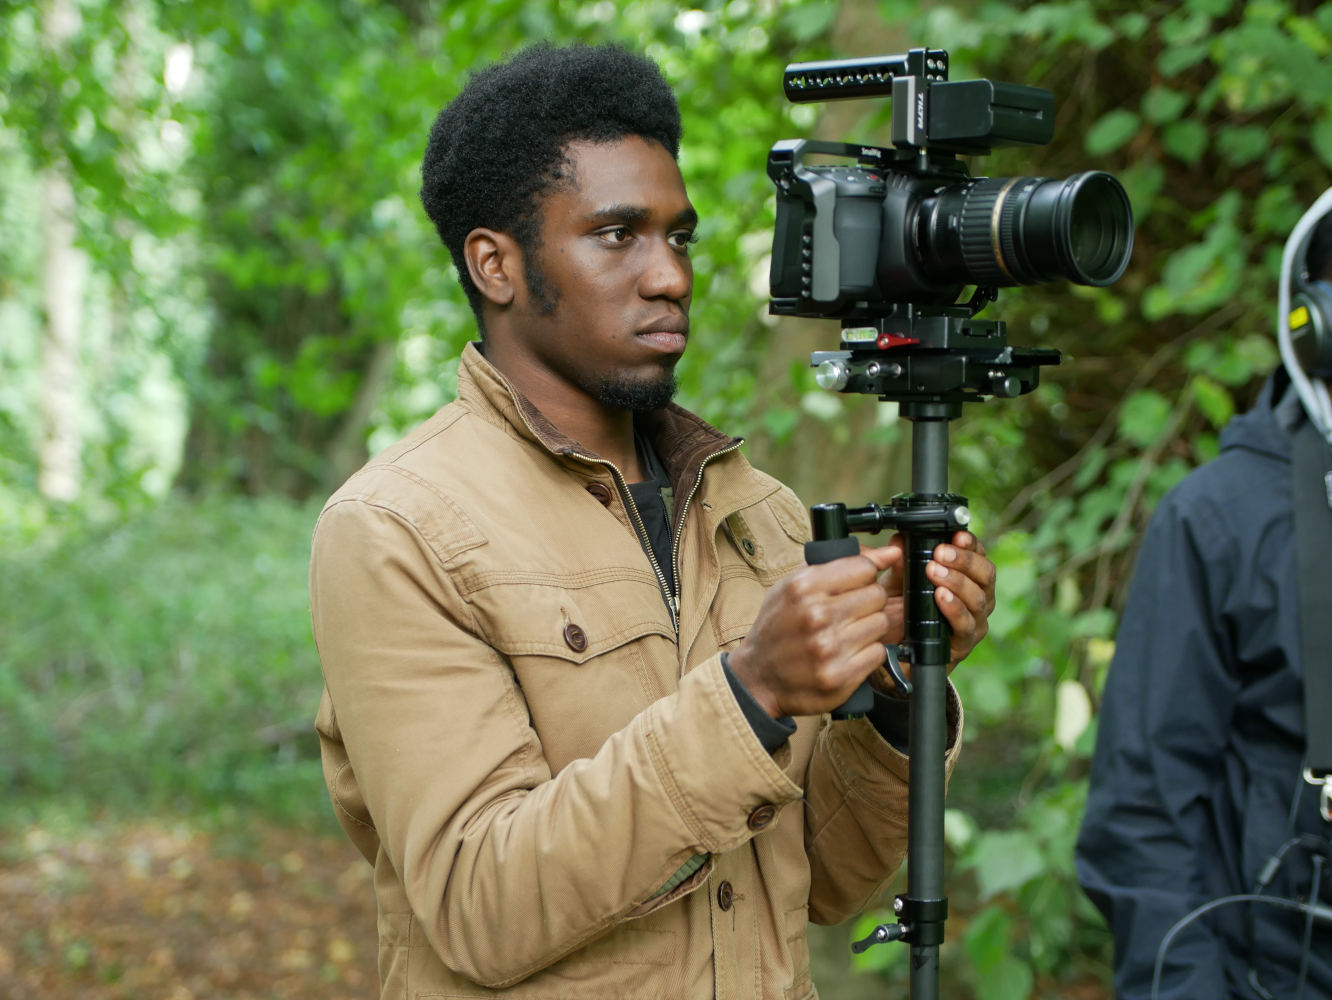 Behind the scenes photo from Movement Films Sketch Sammy of DoP Matthias Djan steadicam operating as Cinematographer